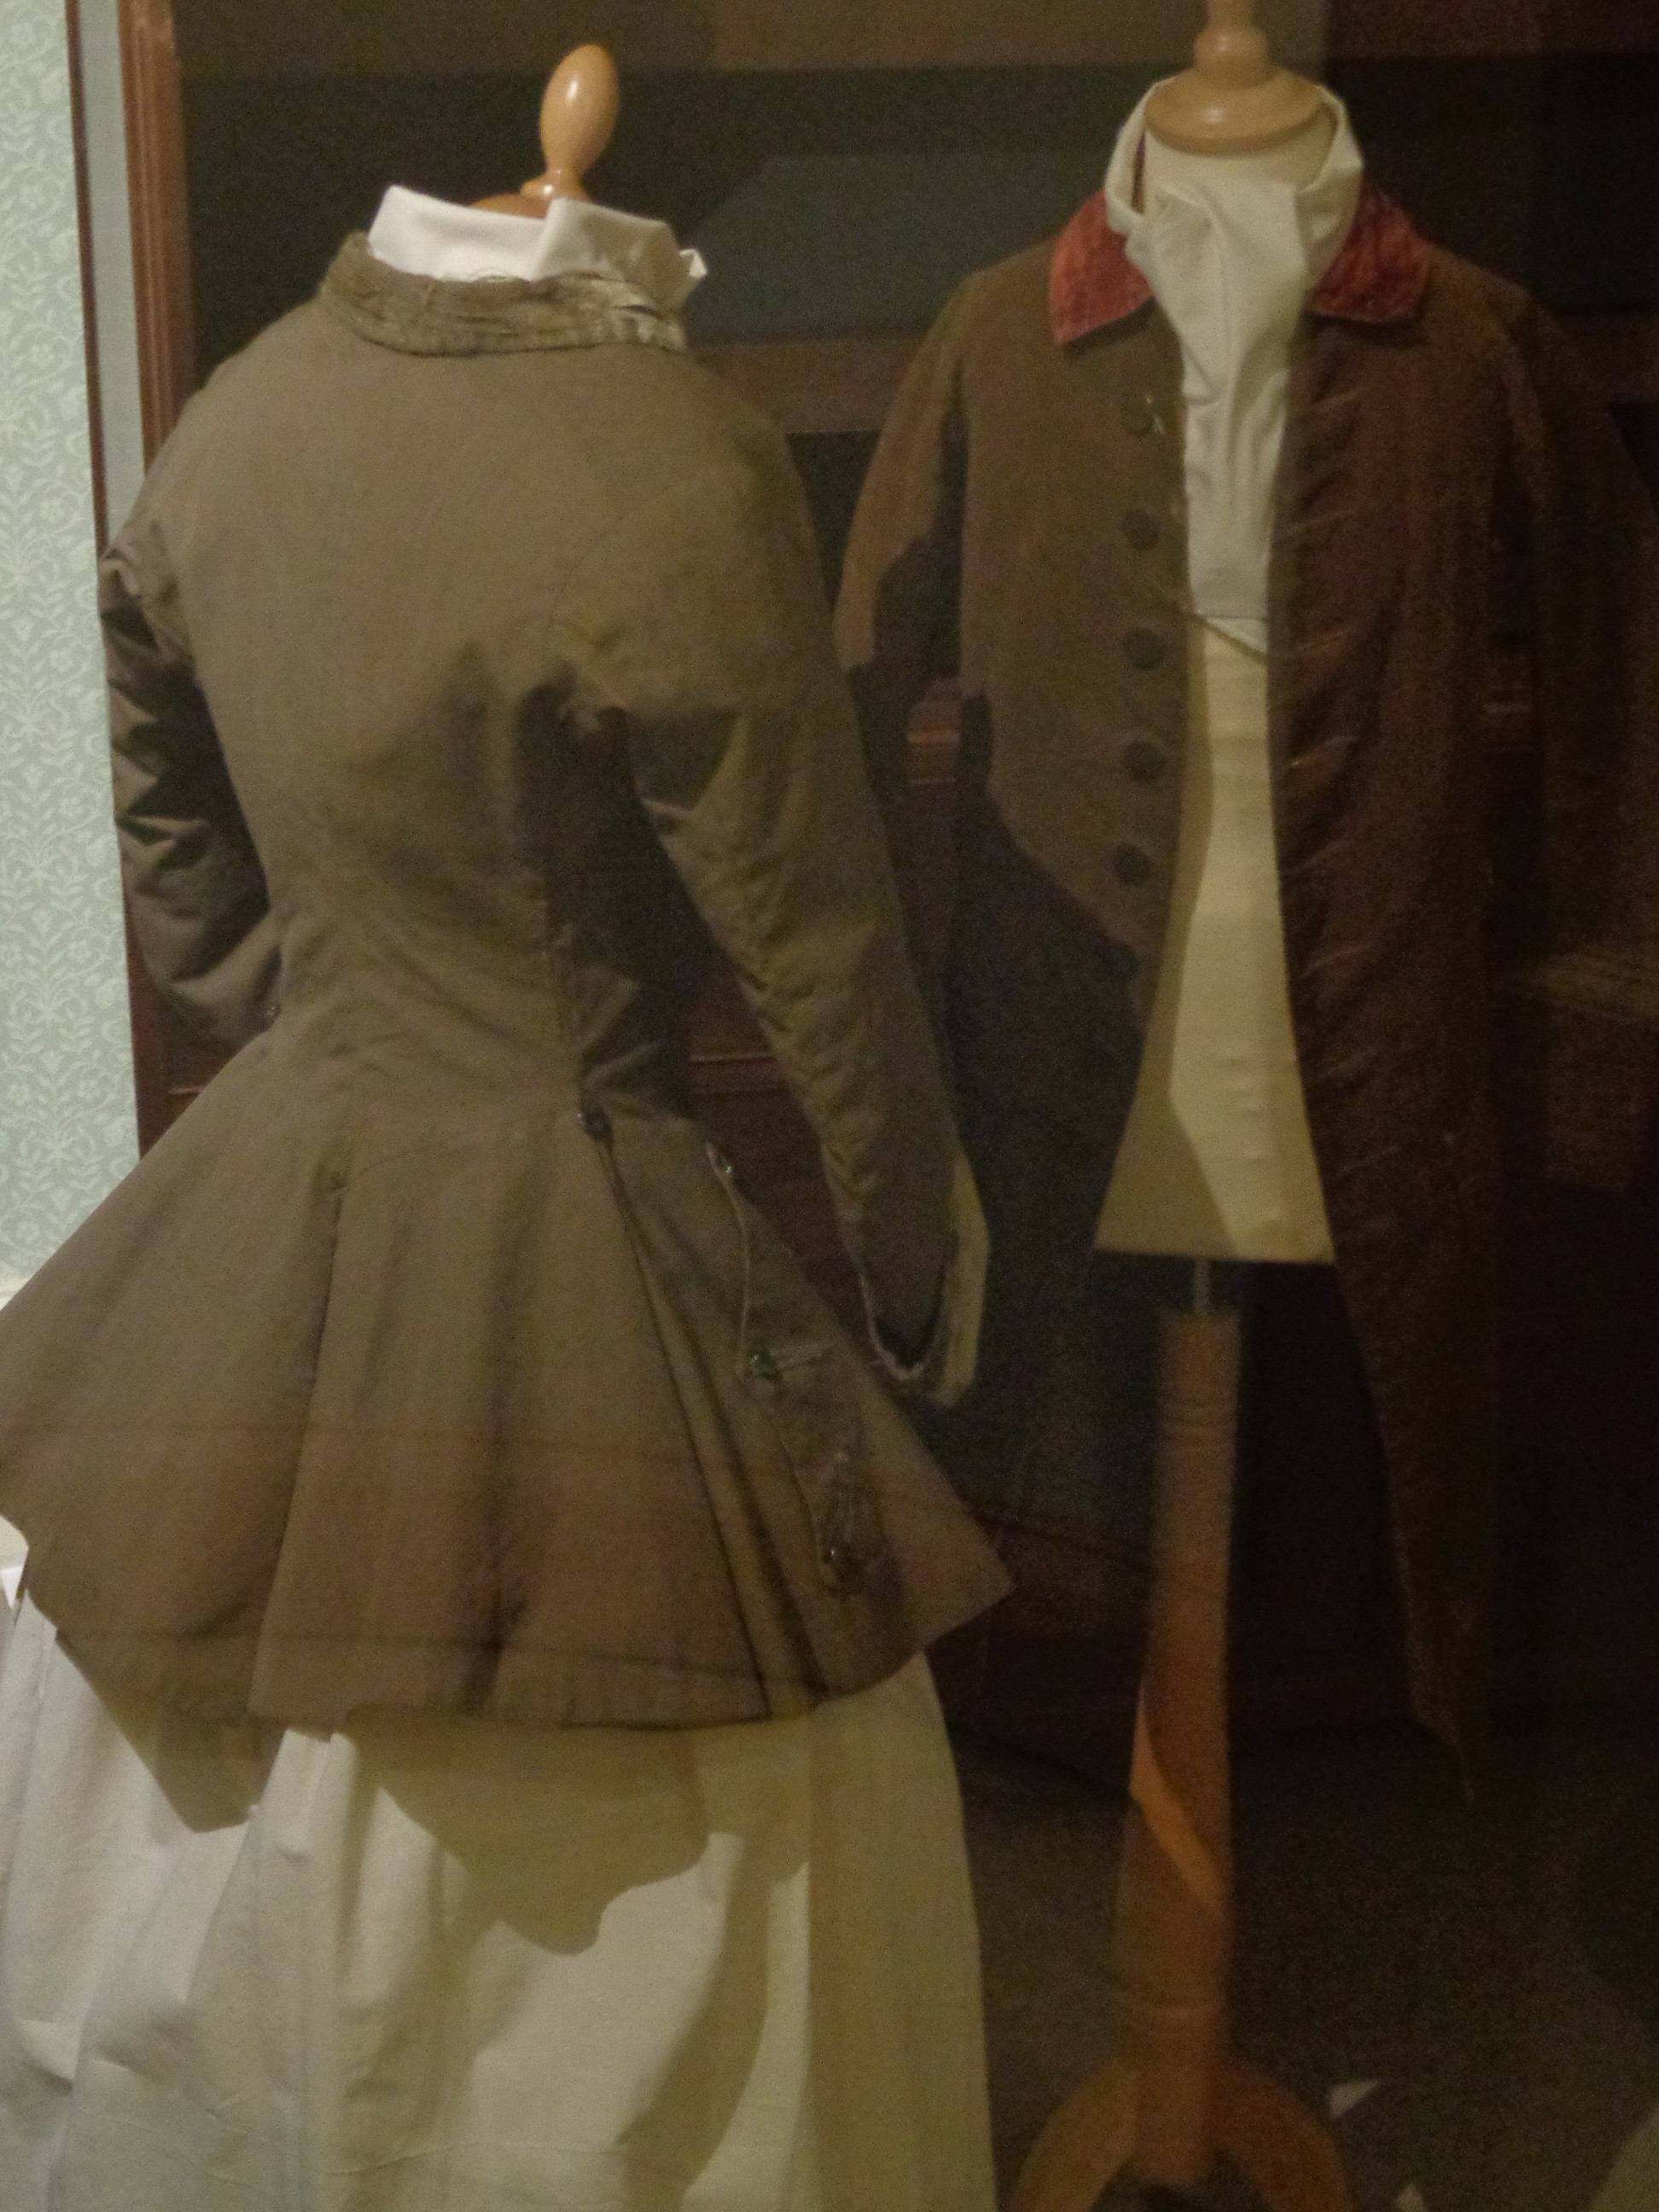 riding habits of the 18th c, what was a riding habit, examples of georgian or 18th c tailoring, frocks of the early 1700s